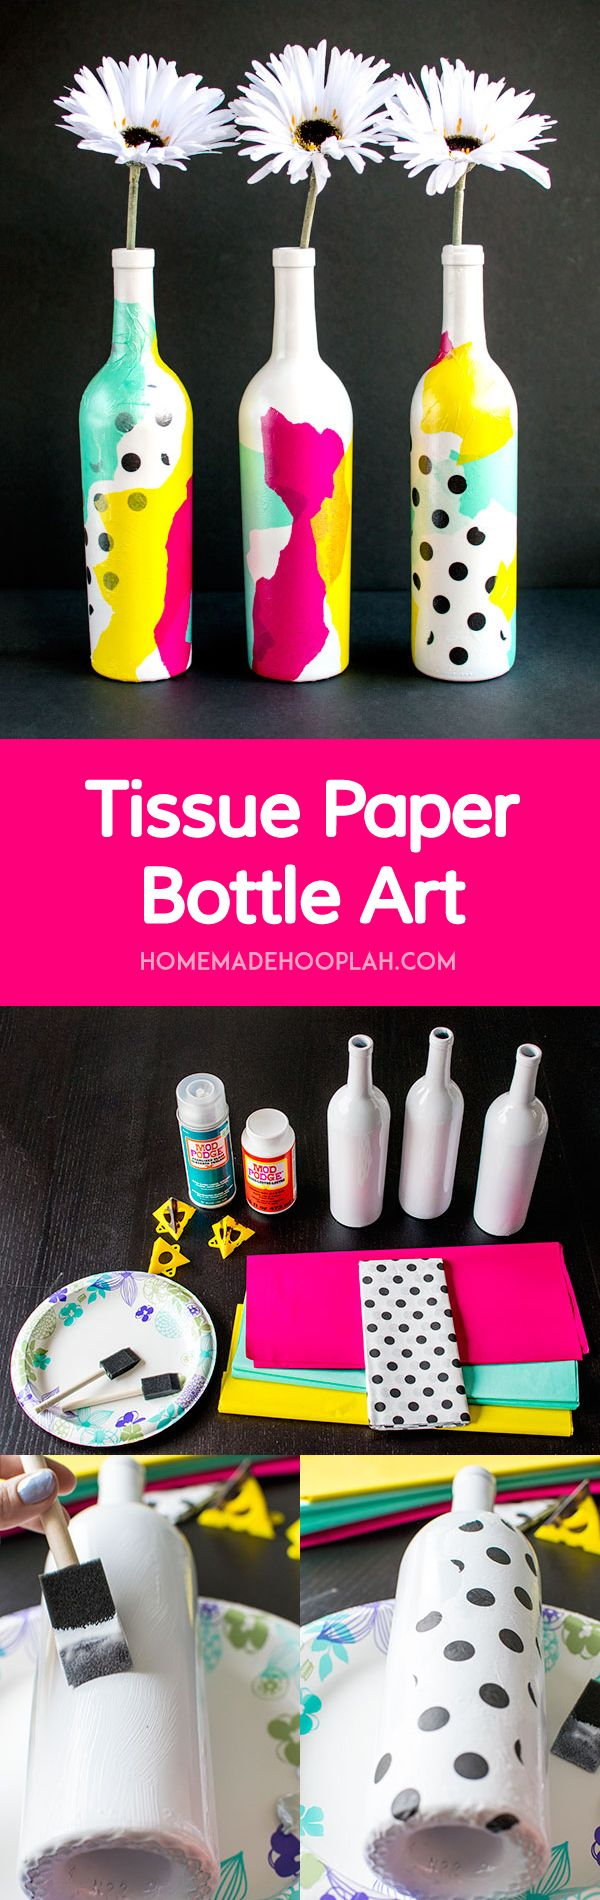 Tissue Paper Bottle Art! Jazz up your old bottles with this easy tutorial for creating beautiful tissue paper bottle art! | HomemadeHooplah.com